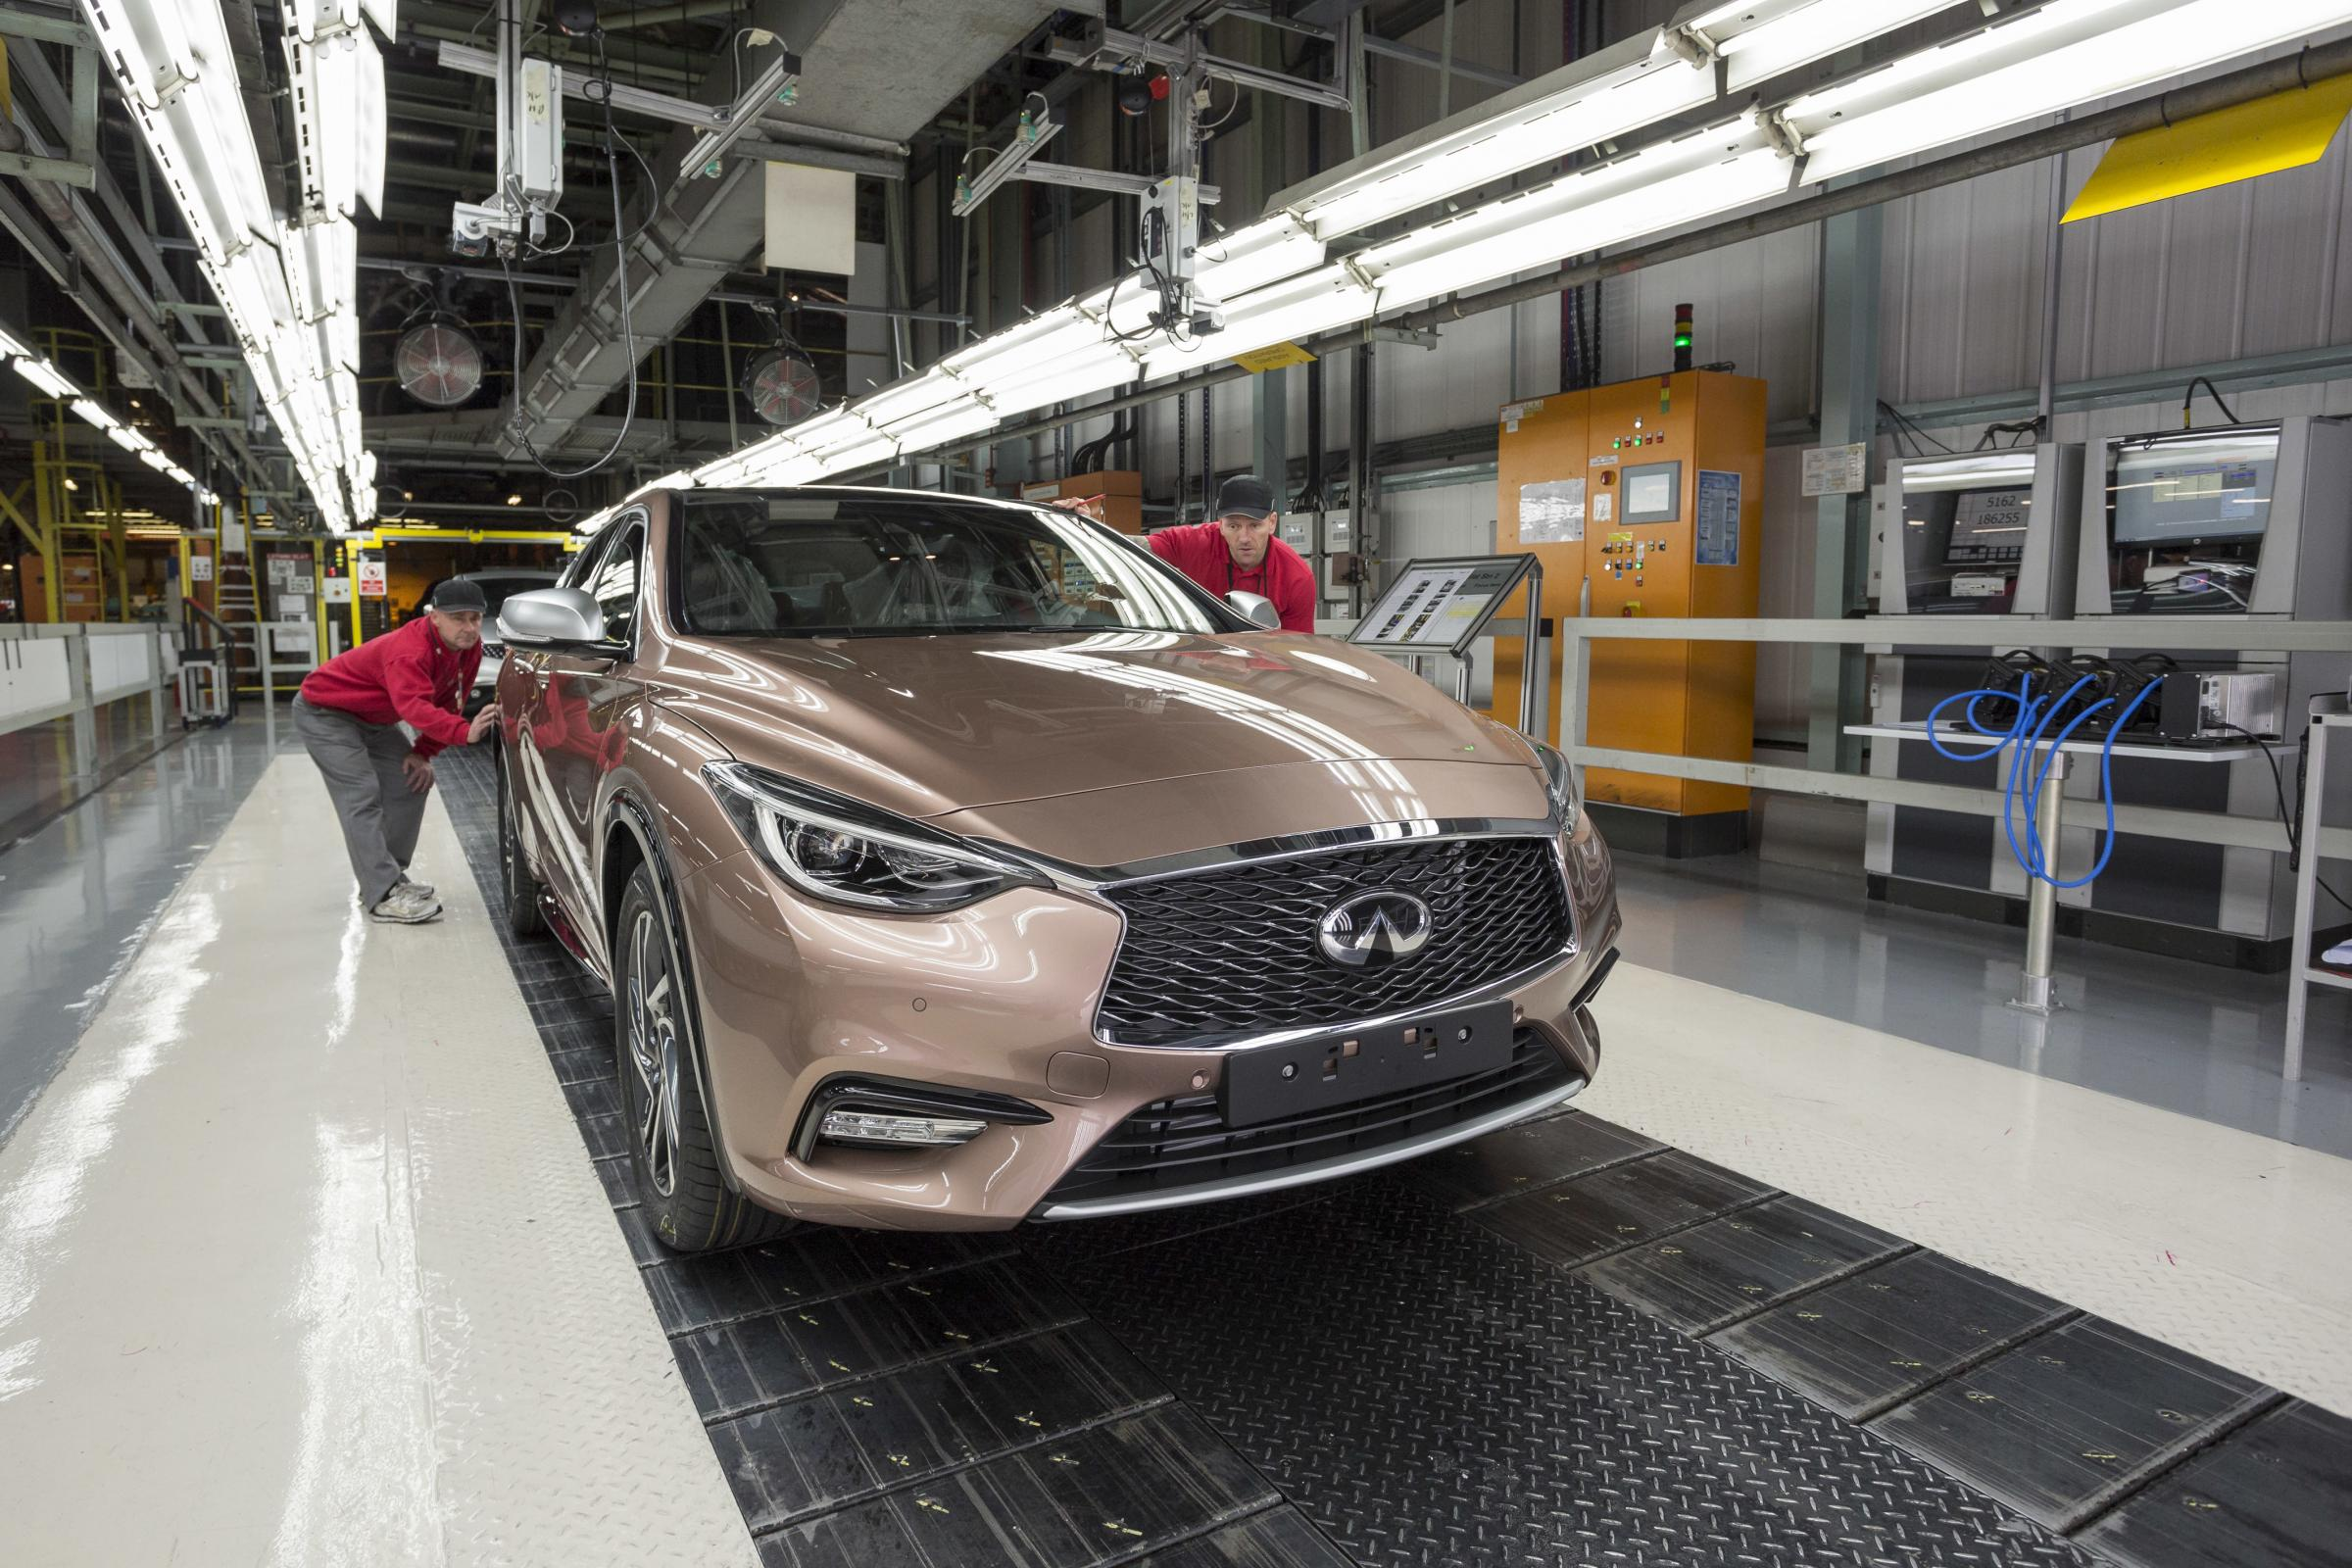 JOBS RISK: Production of the Infiniti Q30 is to cease at Nissan this year